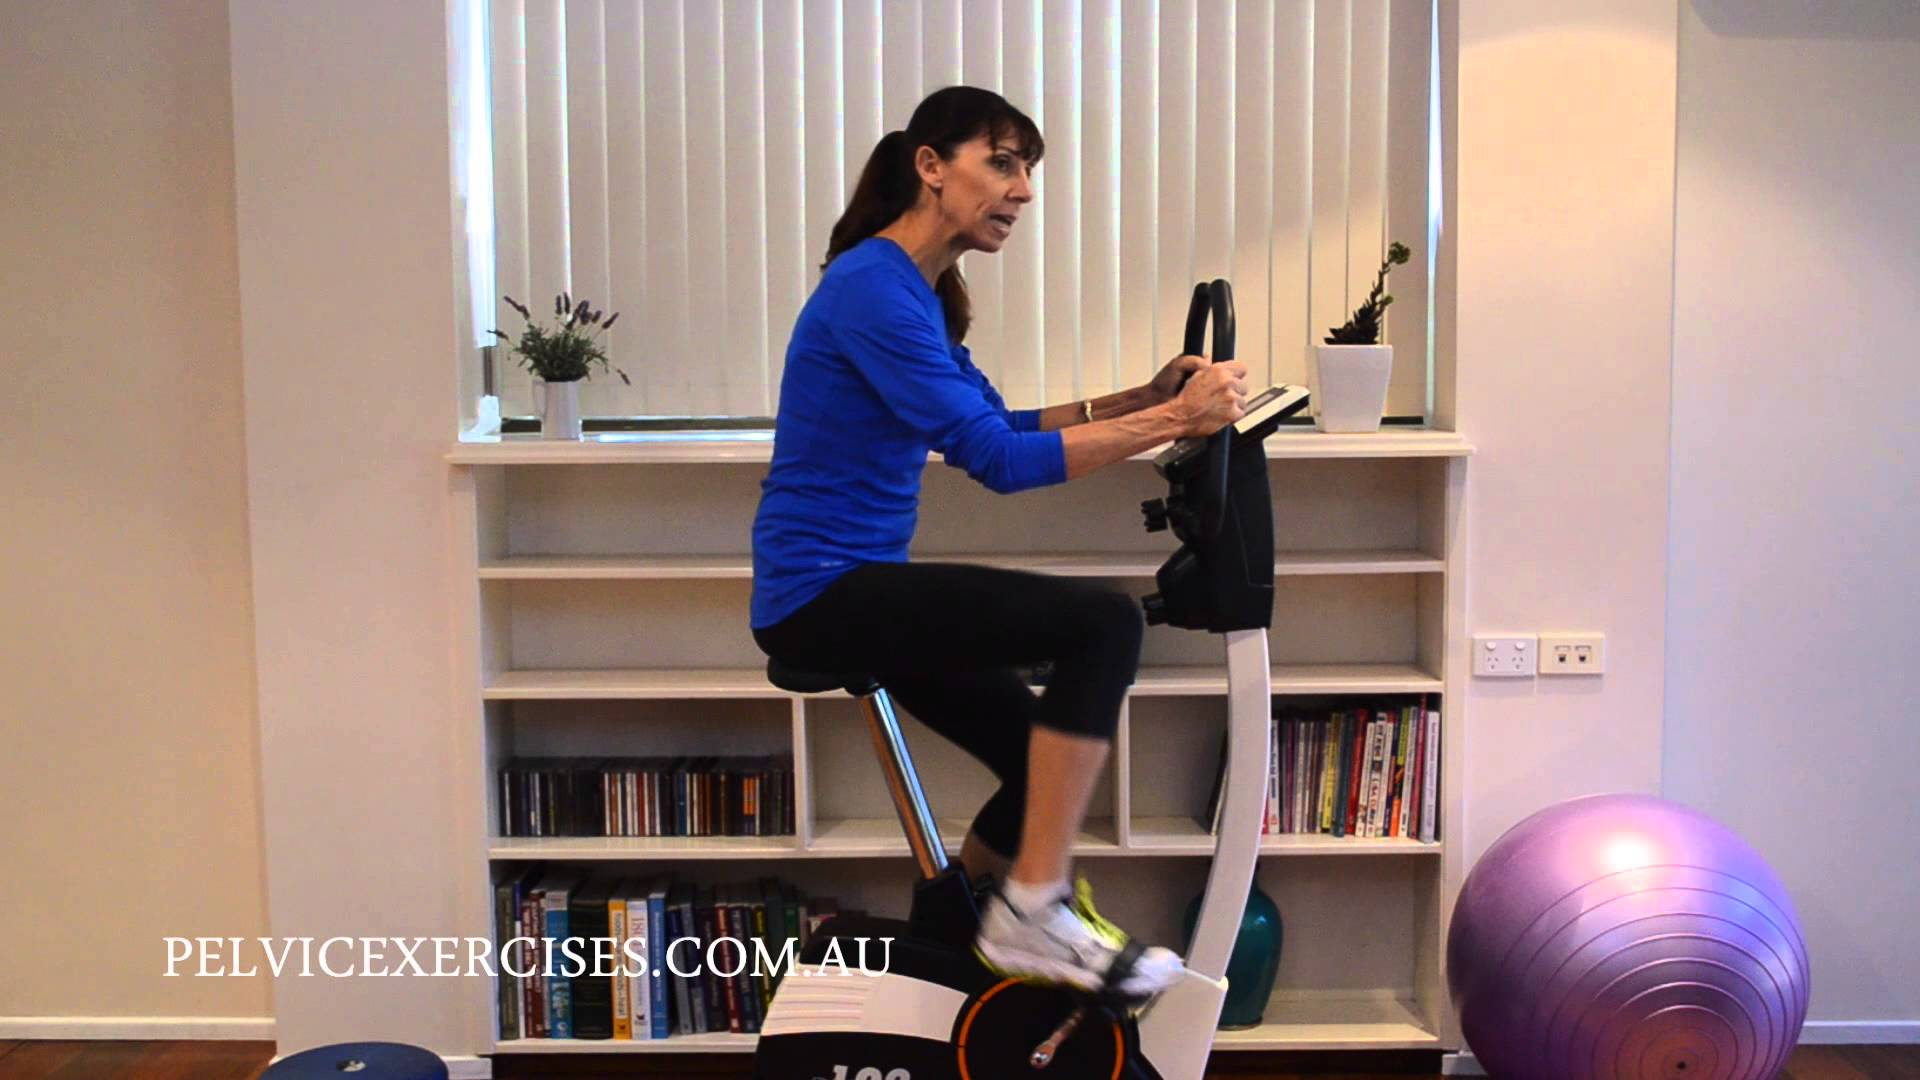 Stationary Bike for Pelvic Floor Safe Exercise & Weight Loss